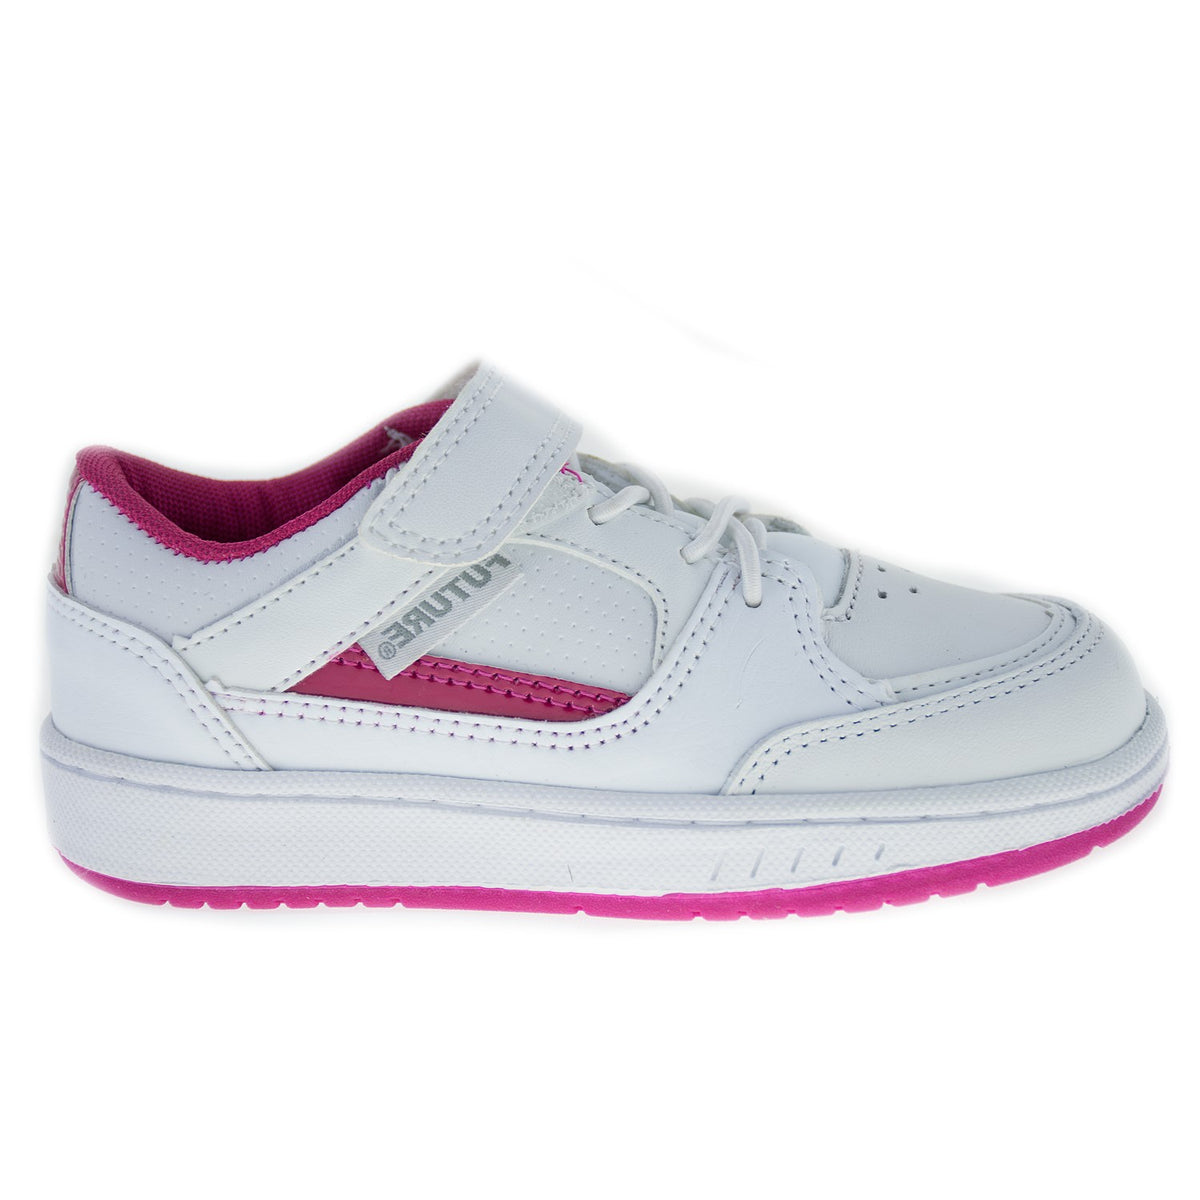 Kid's pink leather tennis shoes – True